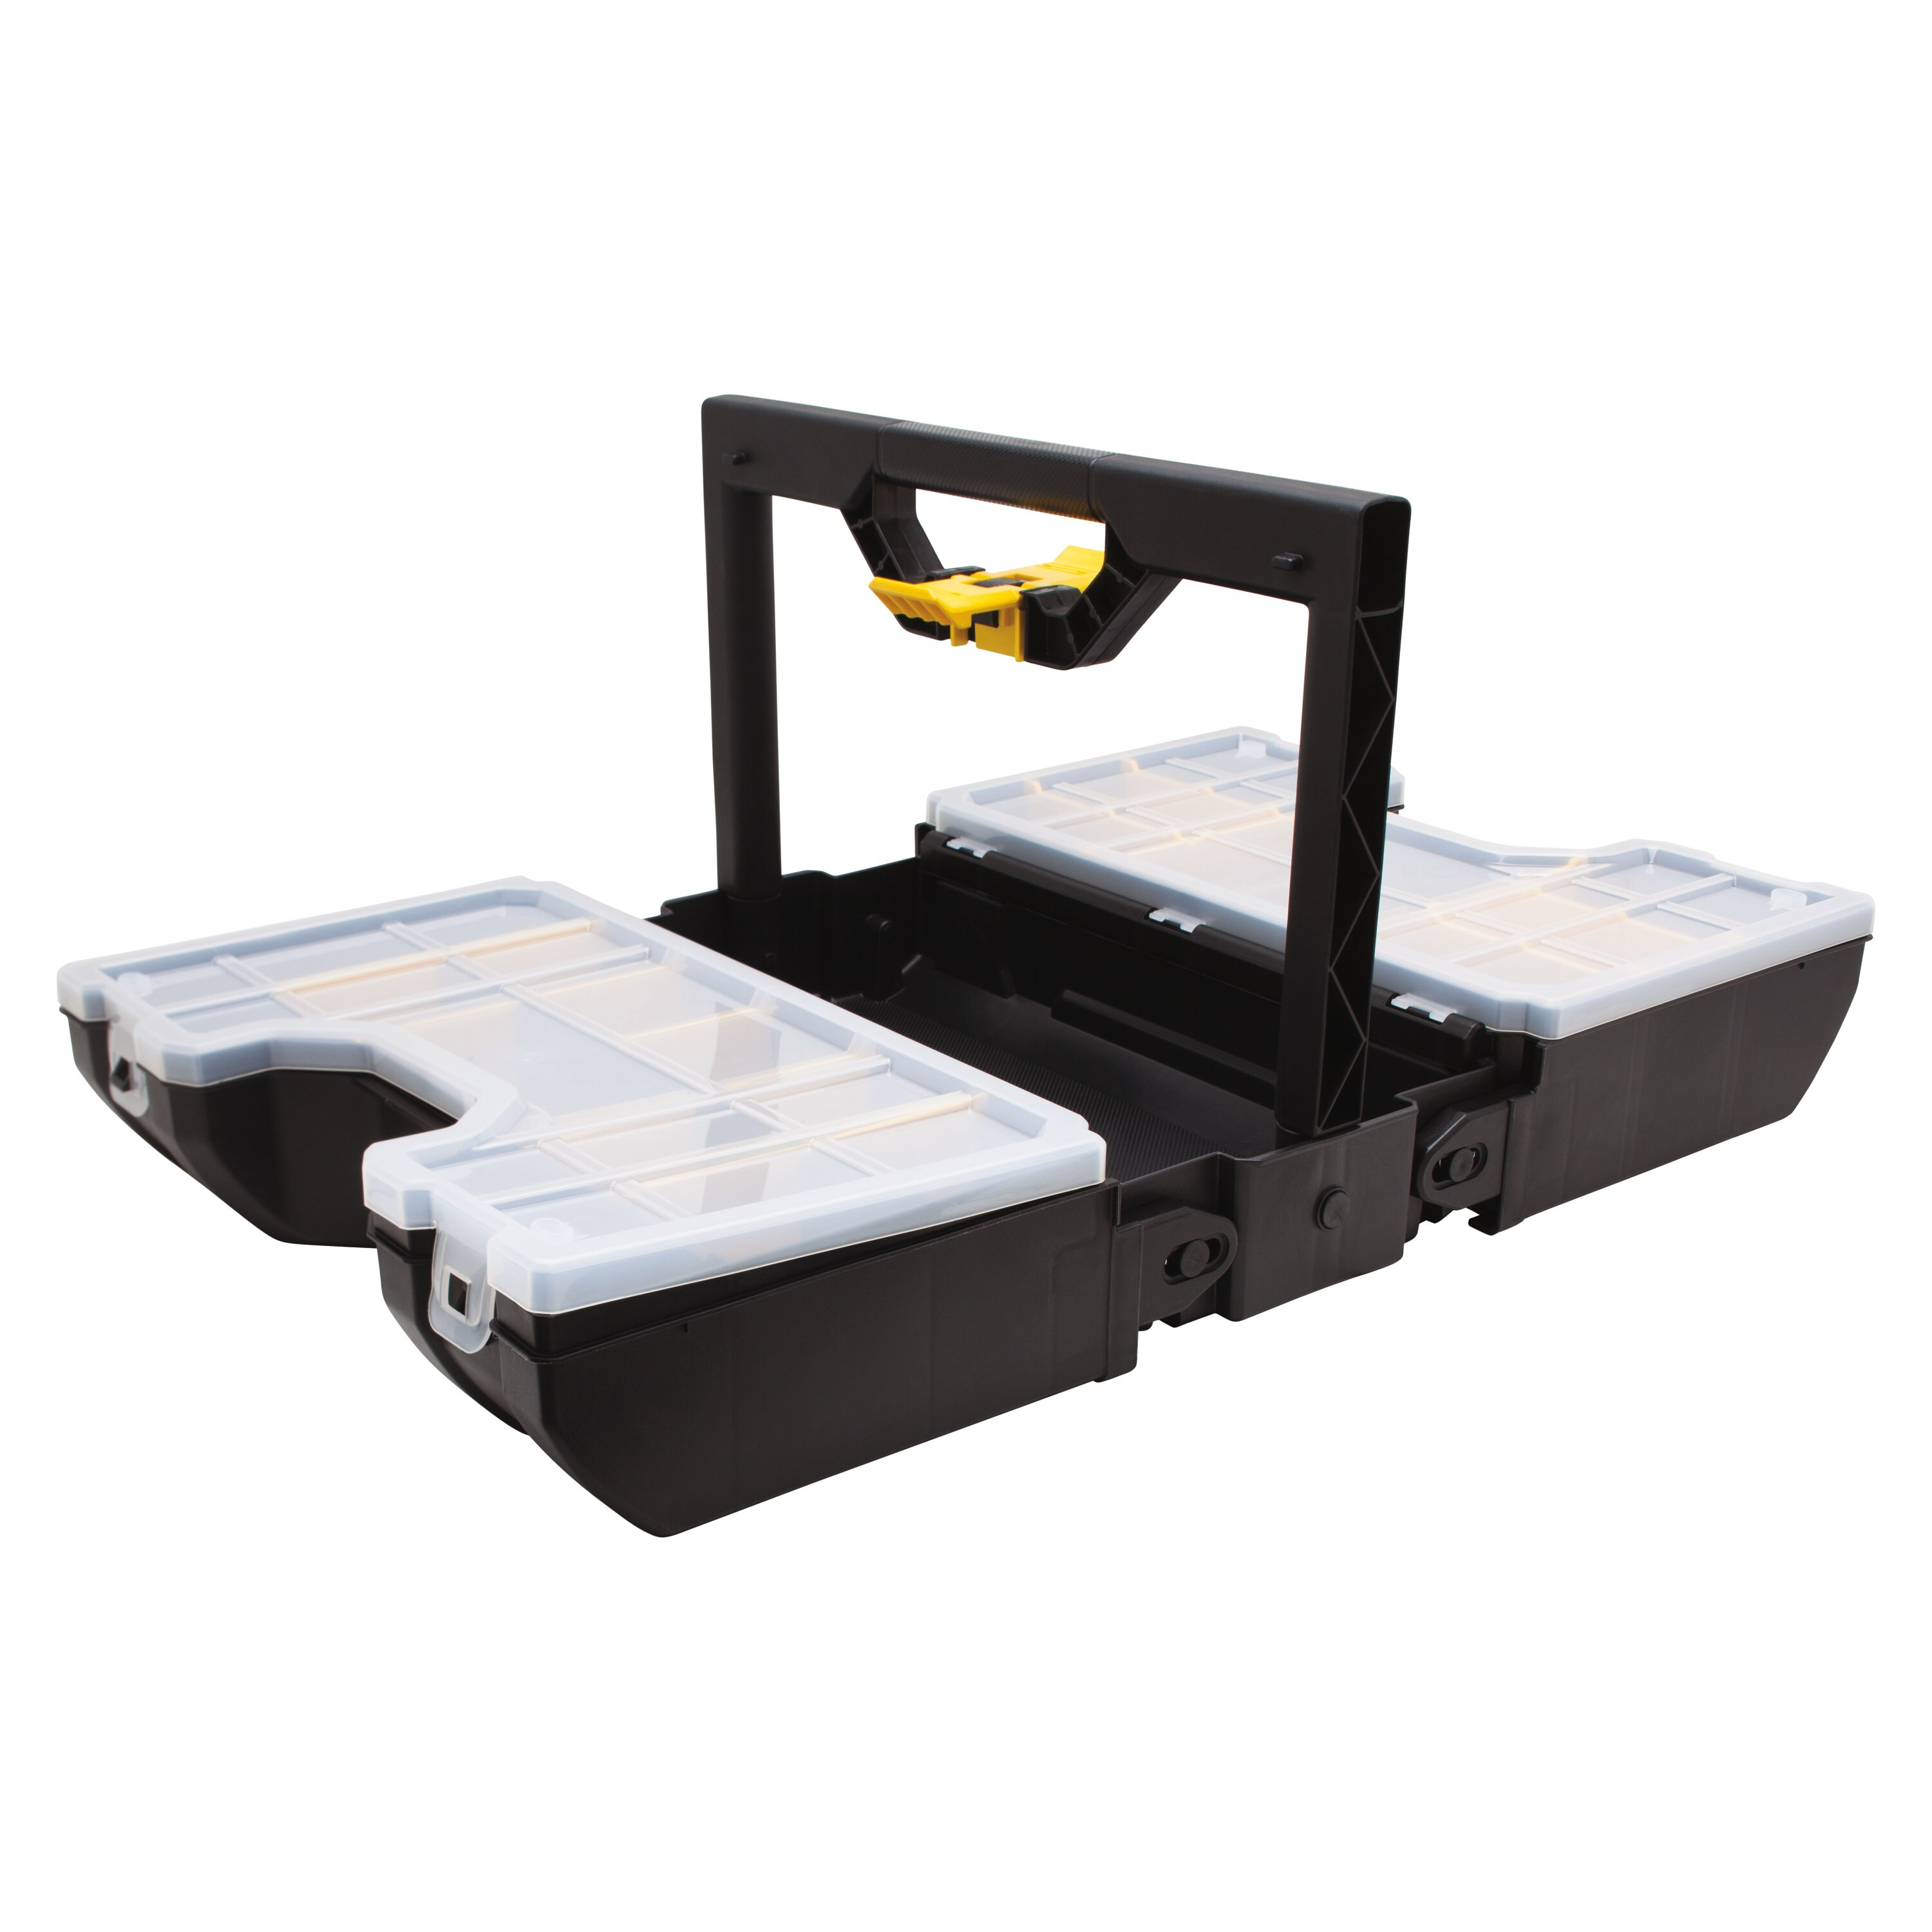 Stanley Tools - 3in1 Tool Organizer - STST17700